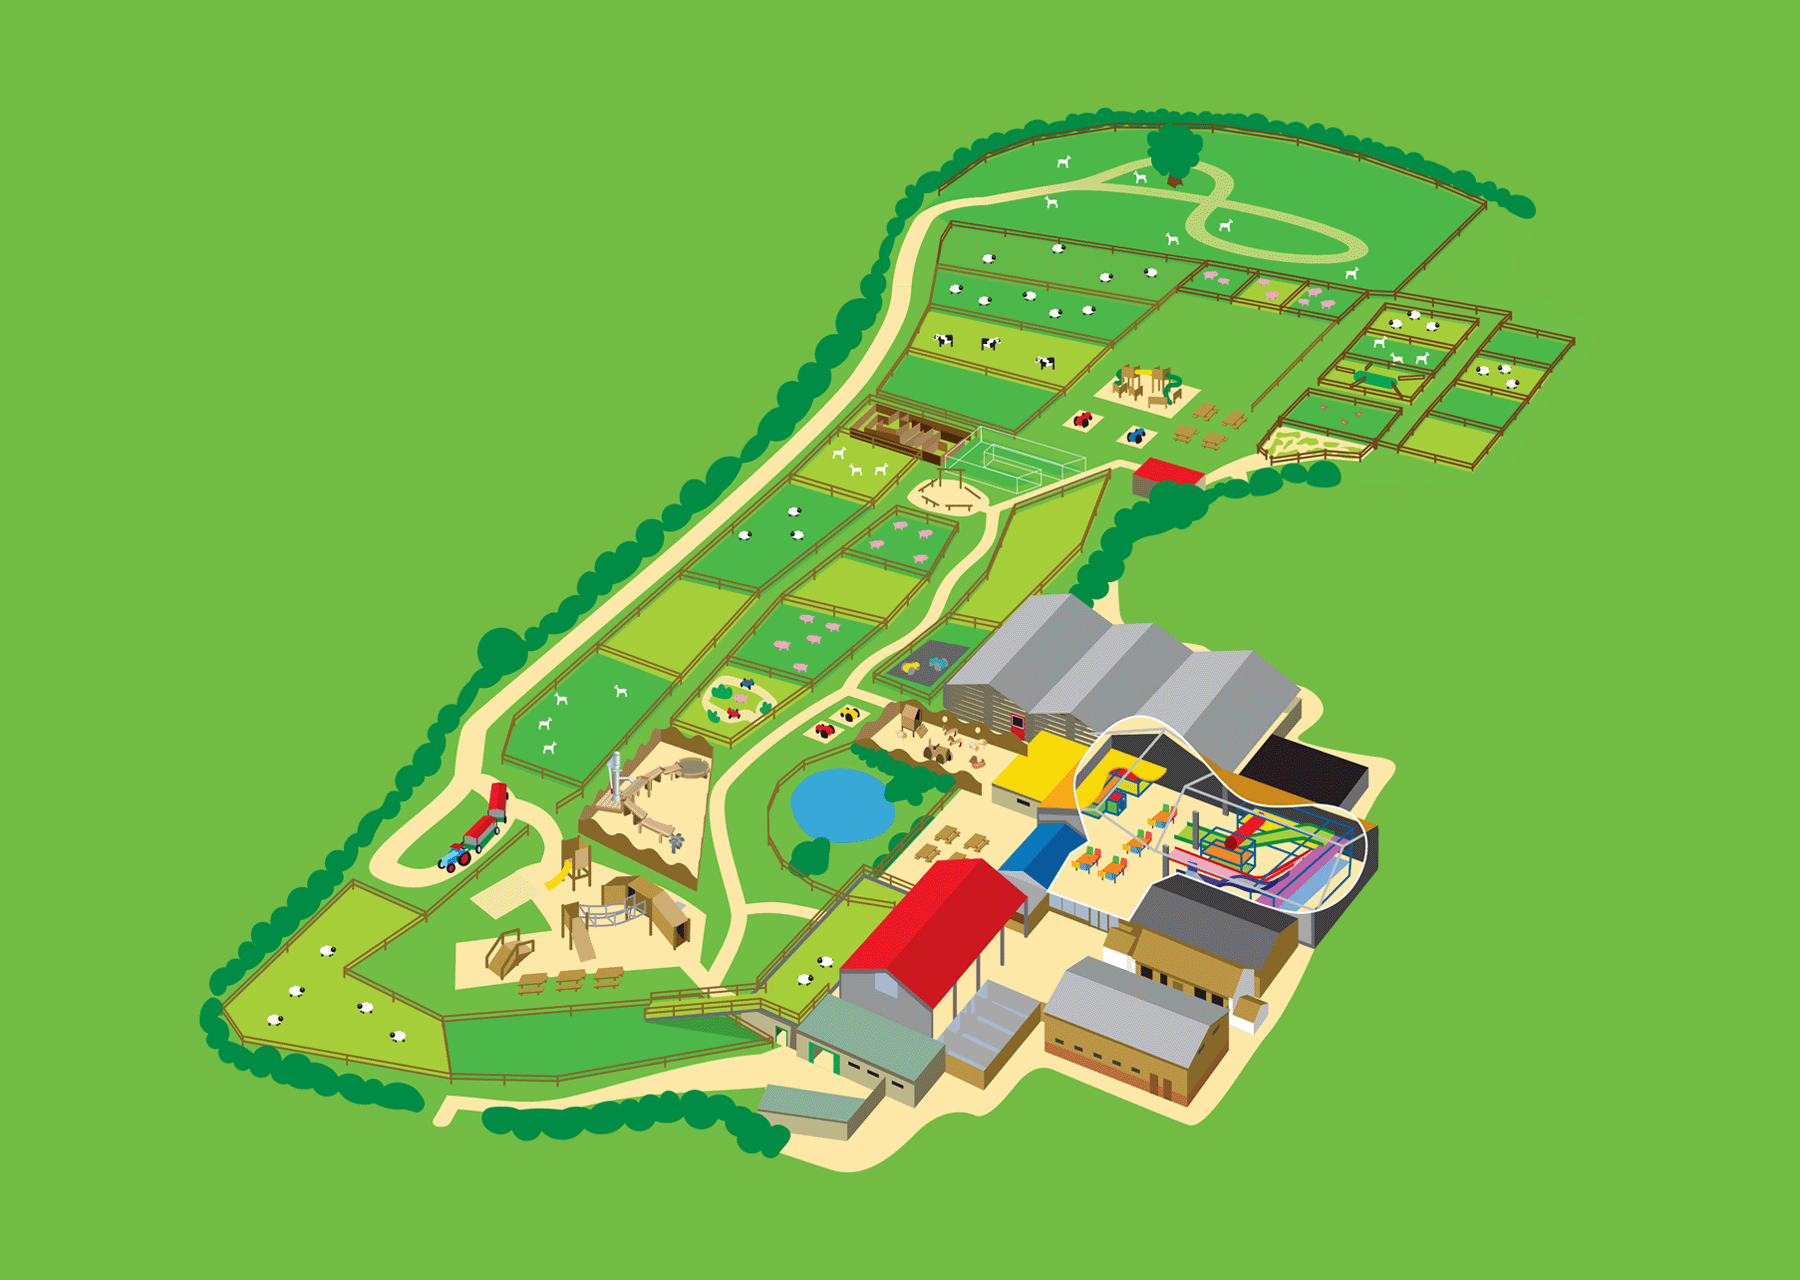 Odds Farm Is The Ideal Outing For Families Schools Groups And - Children's birthday parties high wycombe